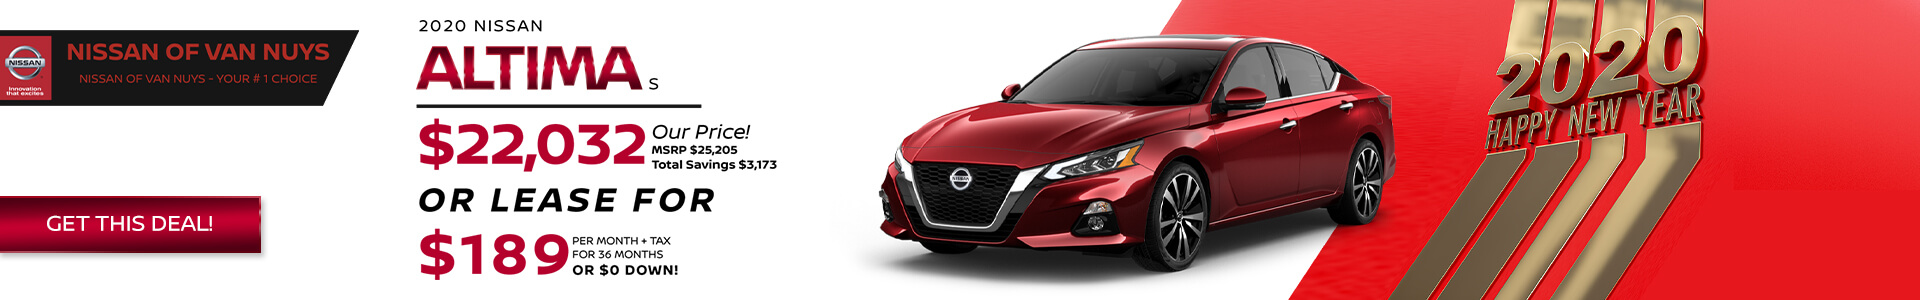 Nissan Altima - Lease for $189